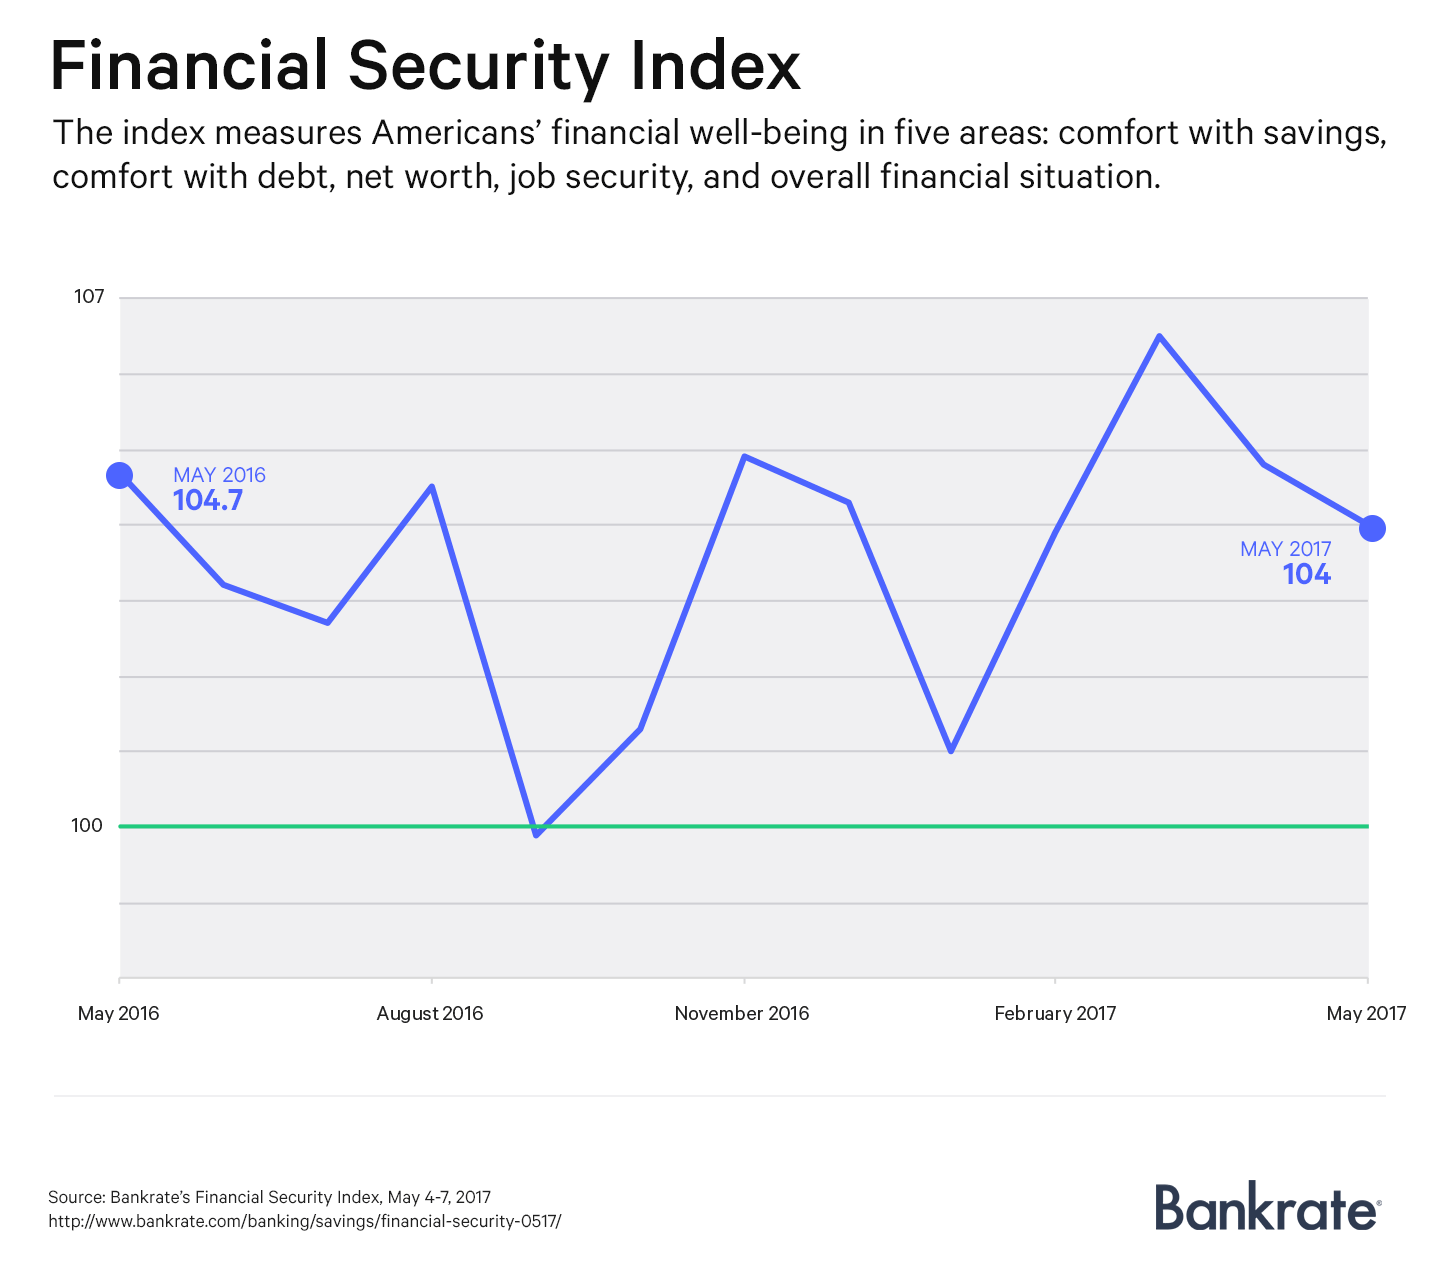 Financial Security Index for May 2017